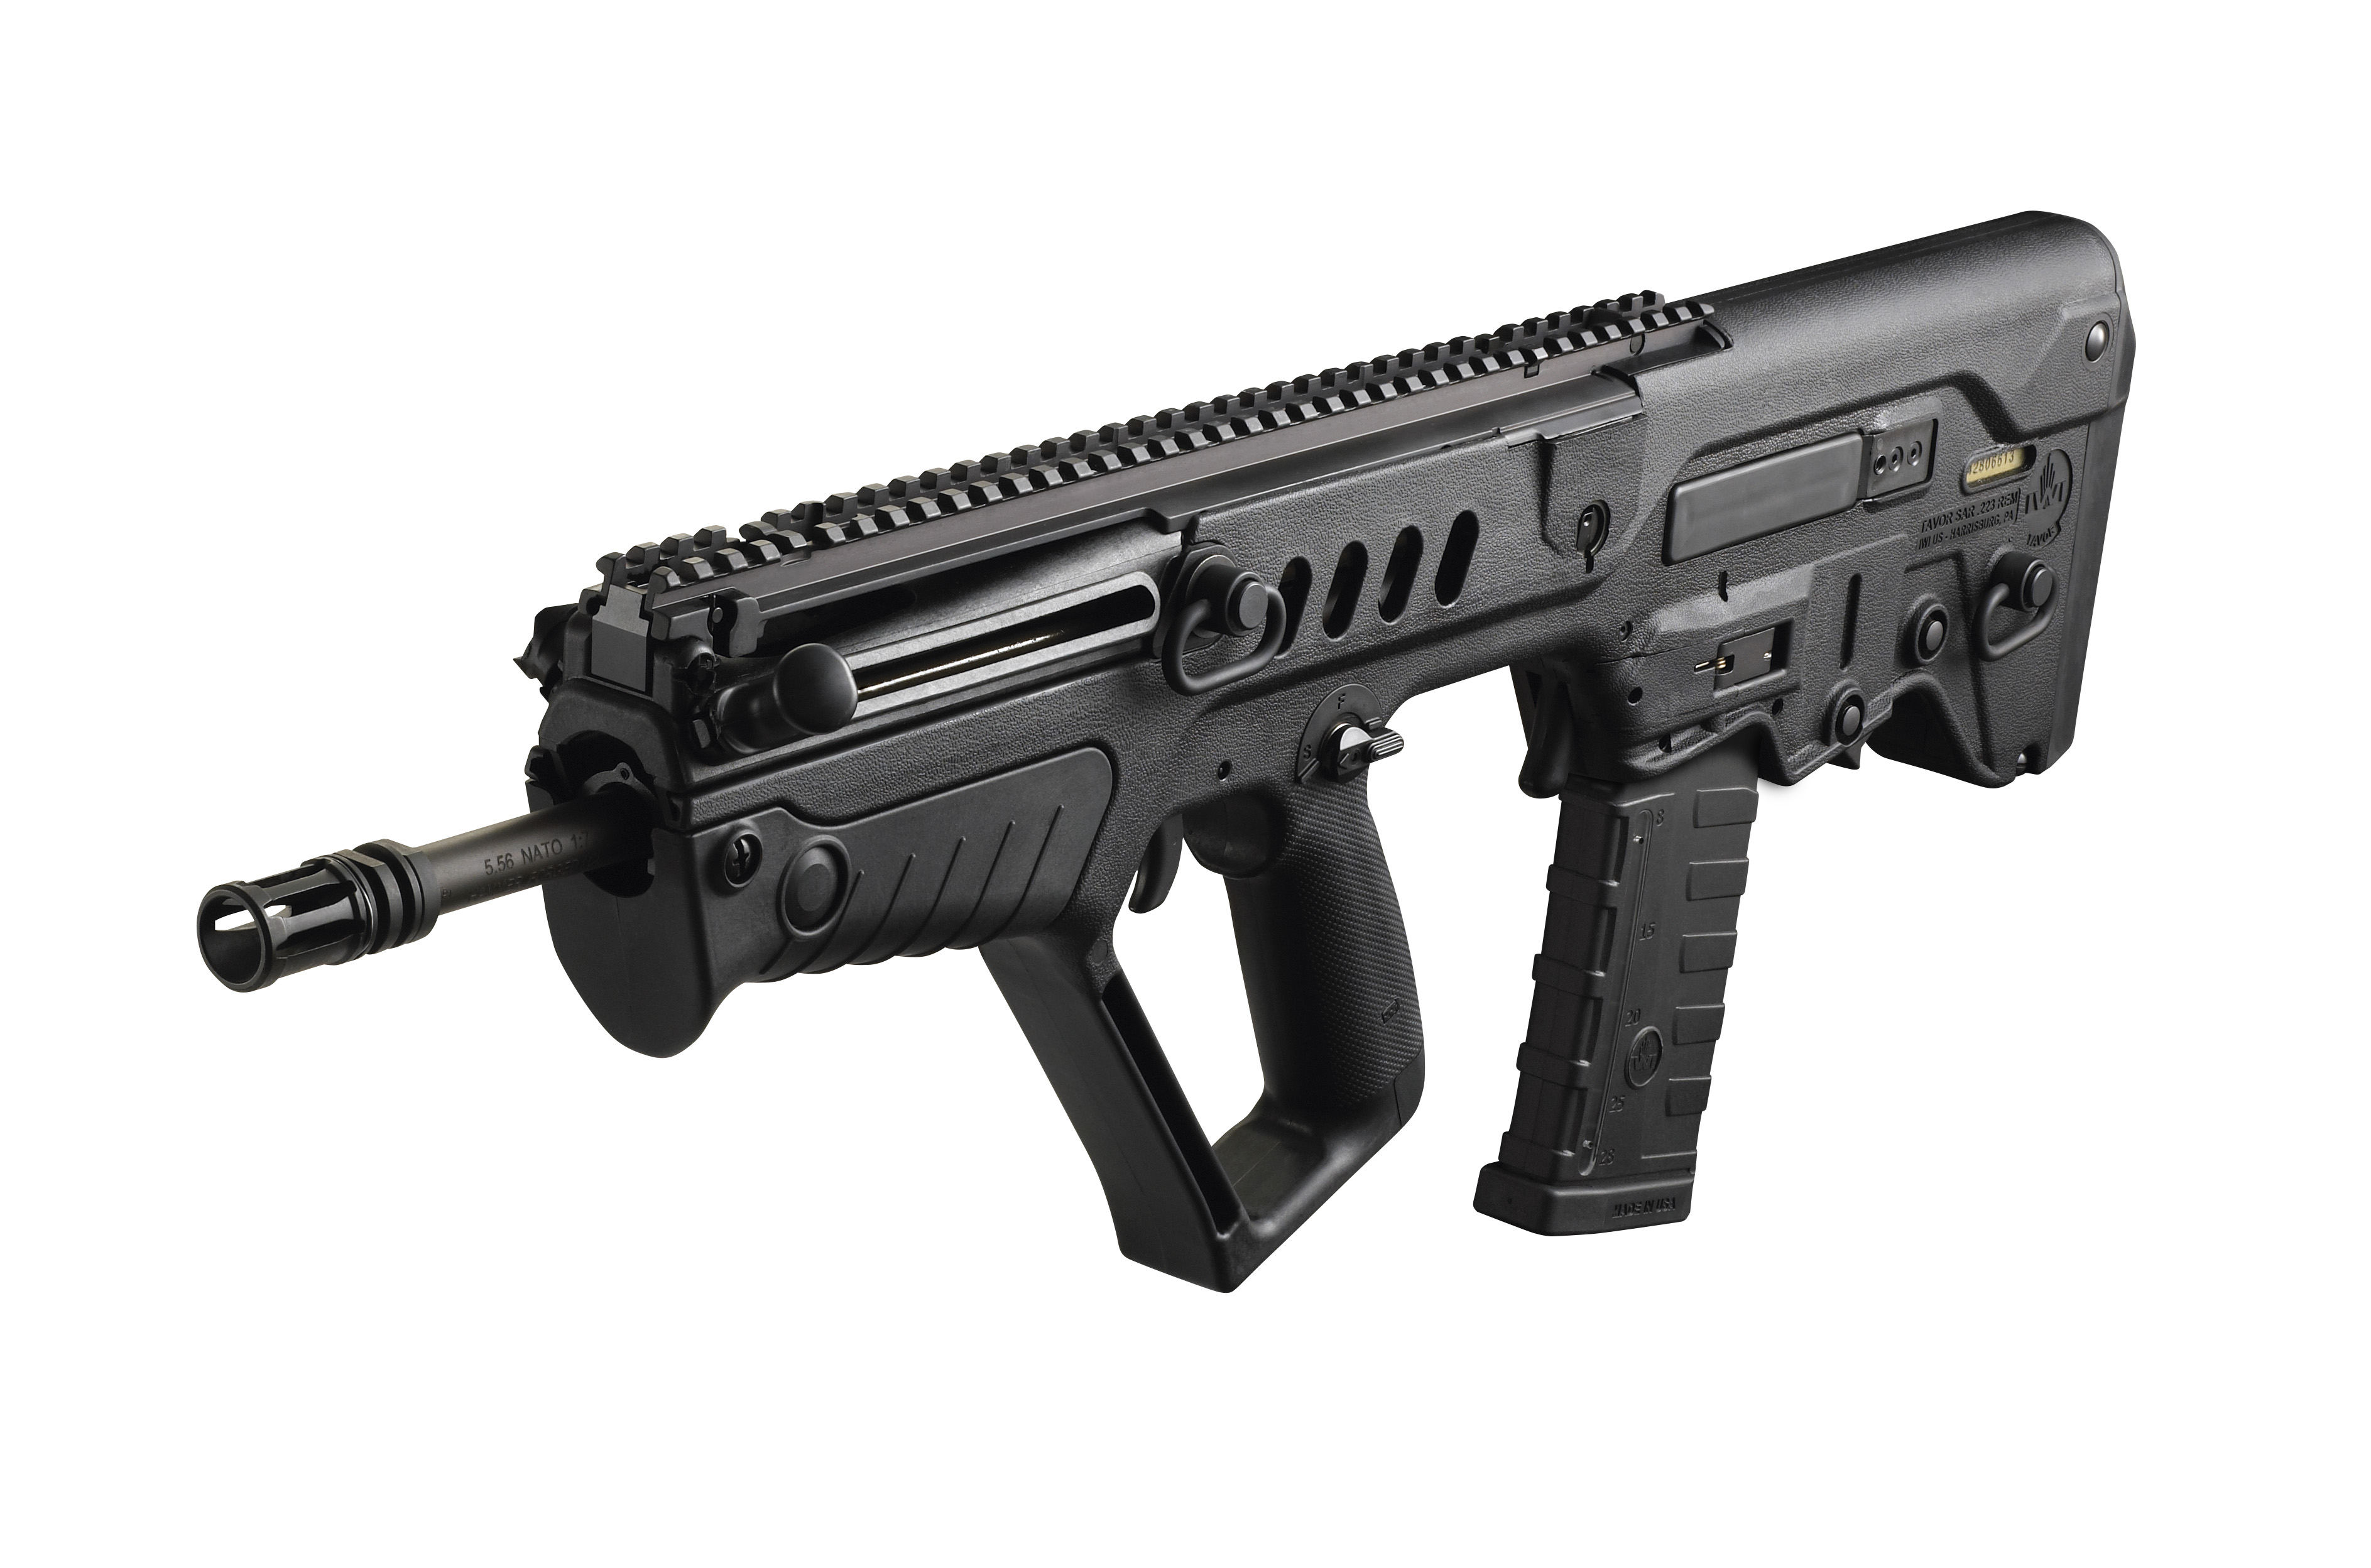 IWI US to Phase Out the Original TAVOR® SAR | IWI US, Inc